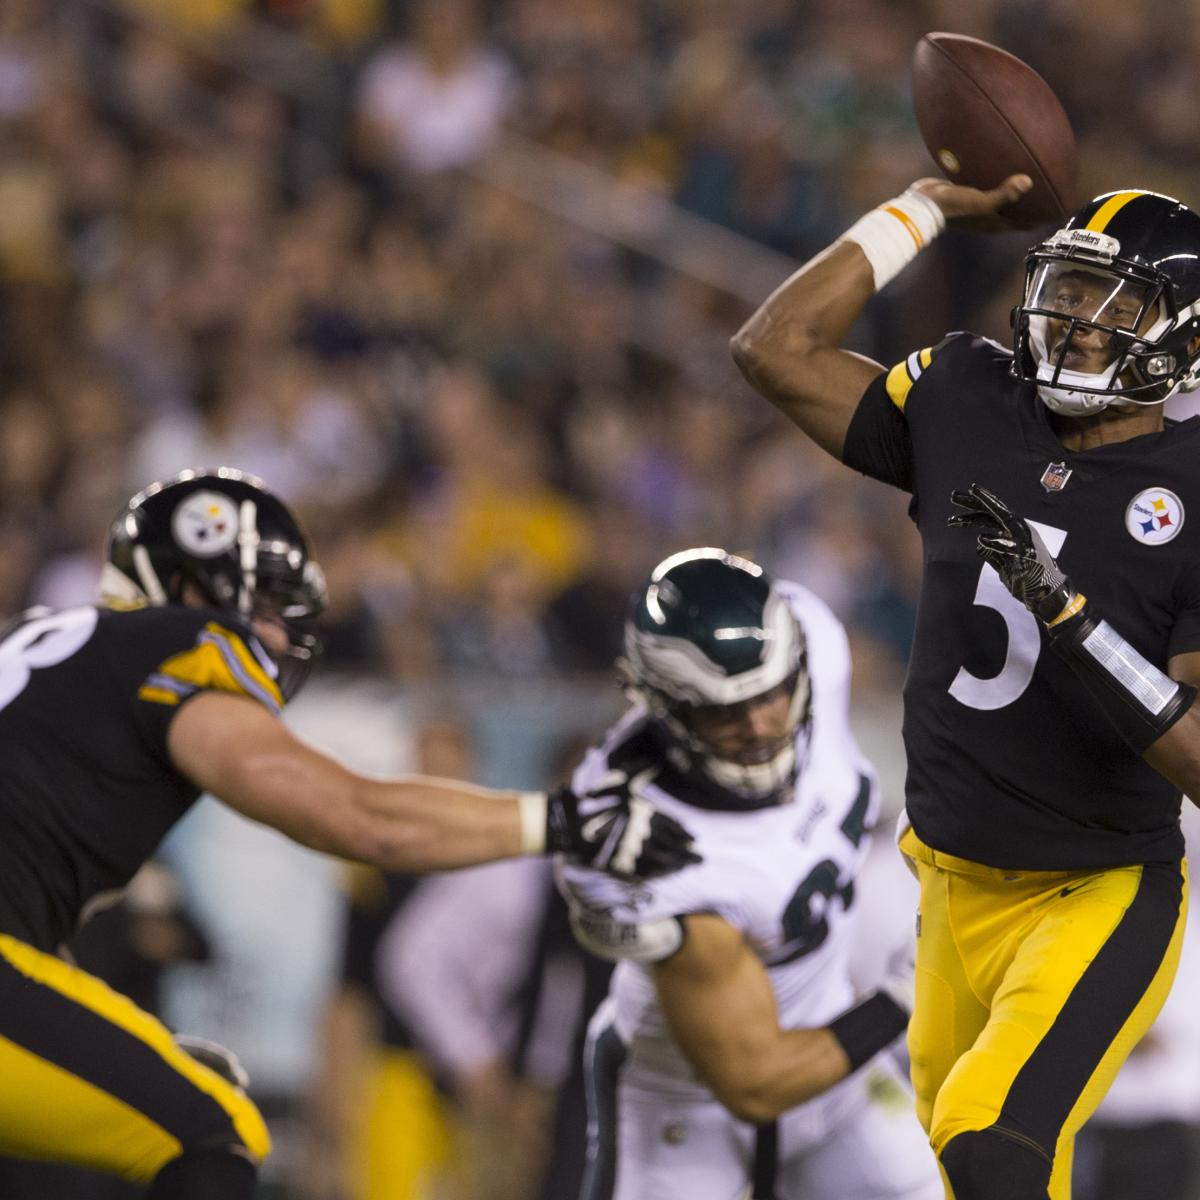 JuJu Smith-Schuster Catches TD in Steelers Preseason Win over Eagles